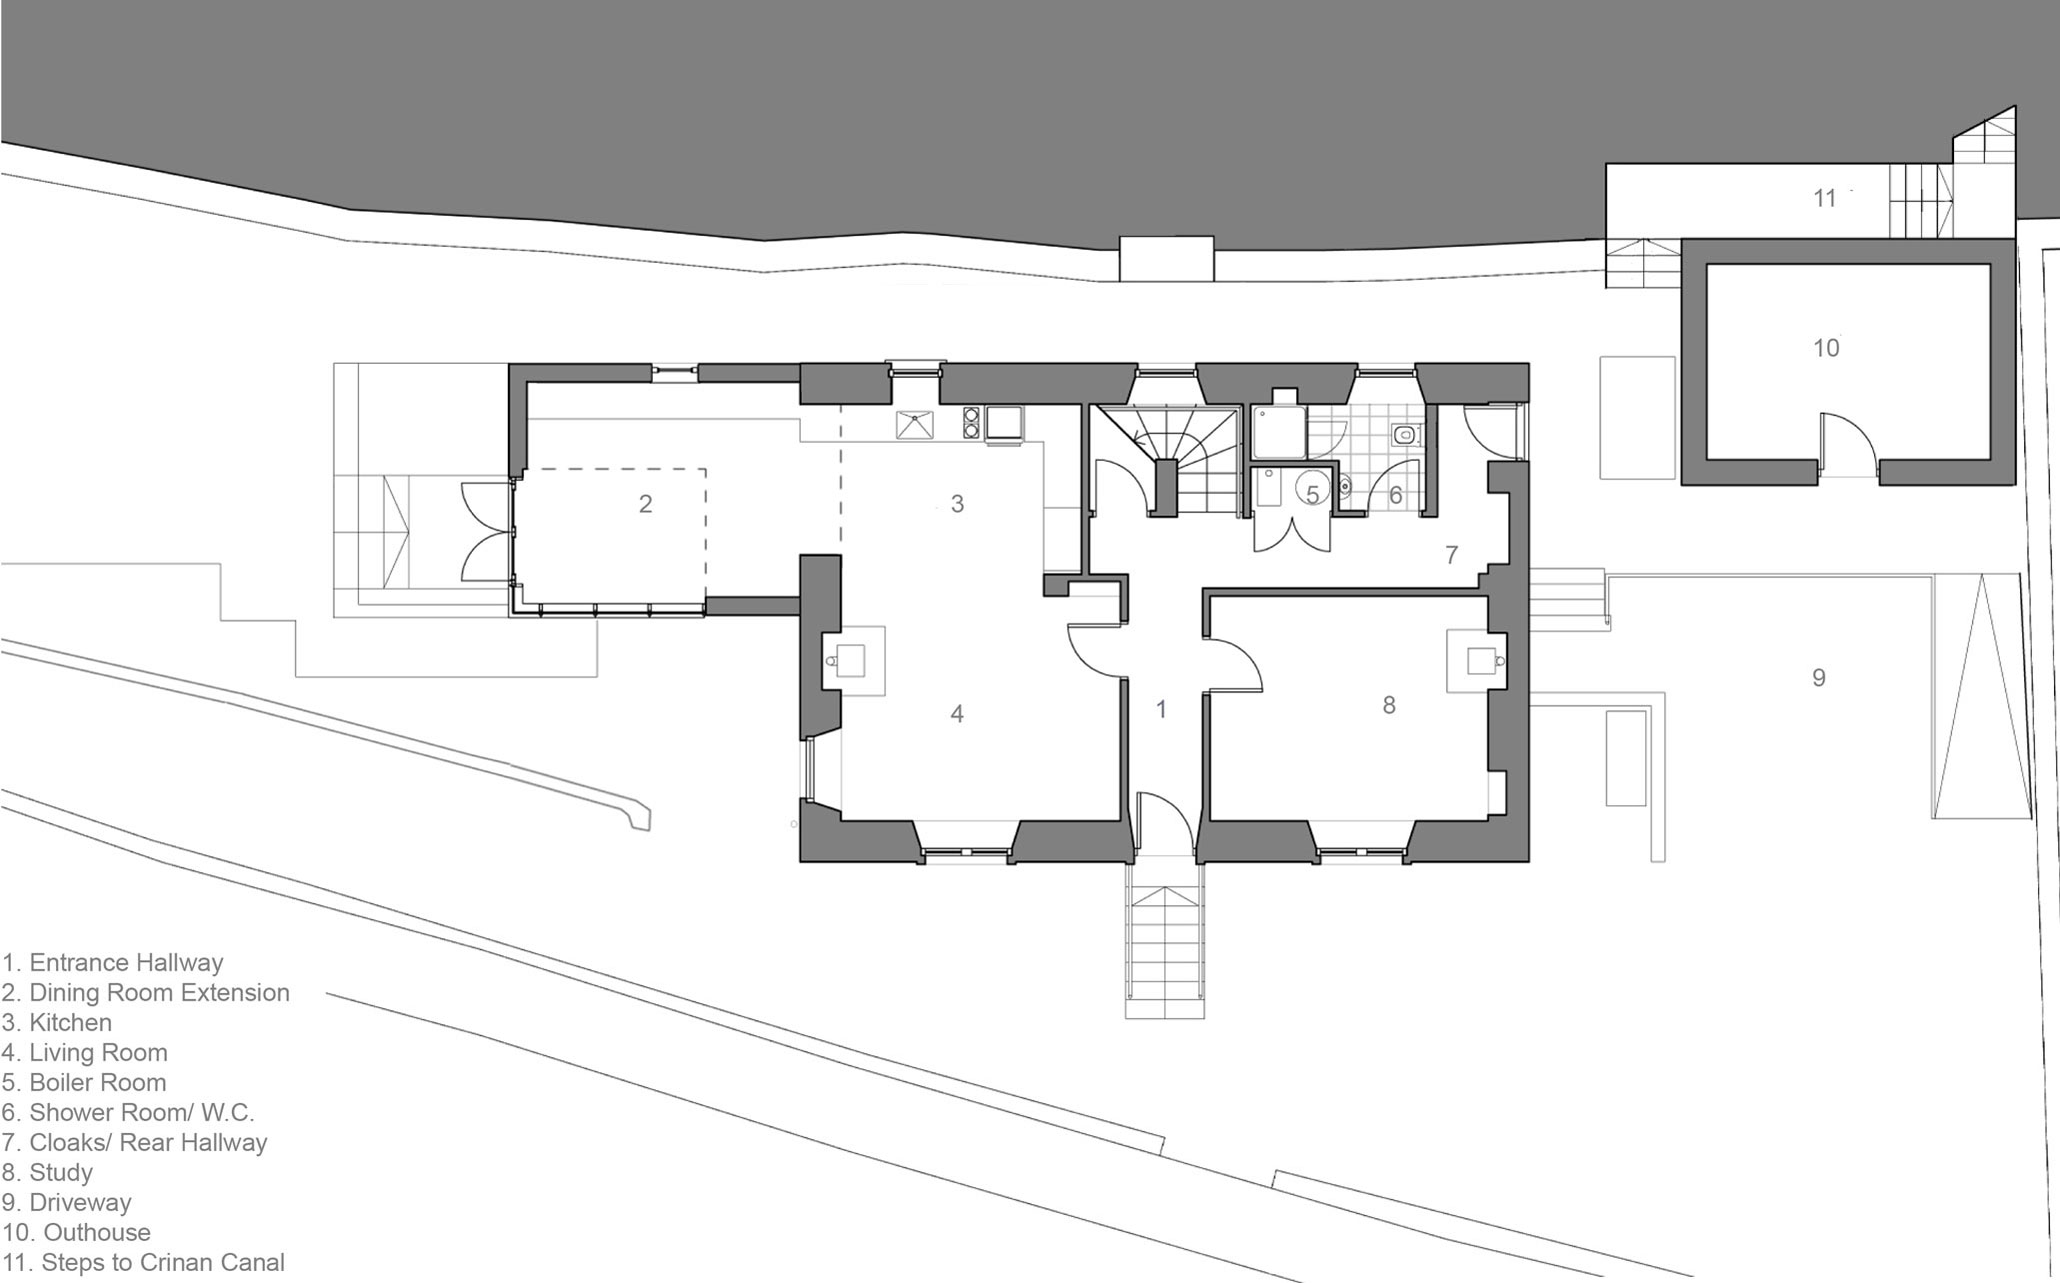 Ground Floor Plan, The Sheiling, Overlooking Loch Fyne, Scotland by APD Architecture